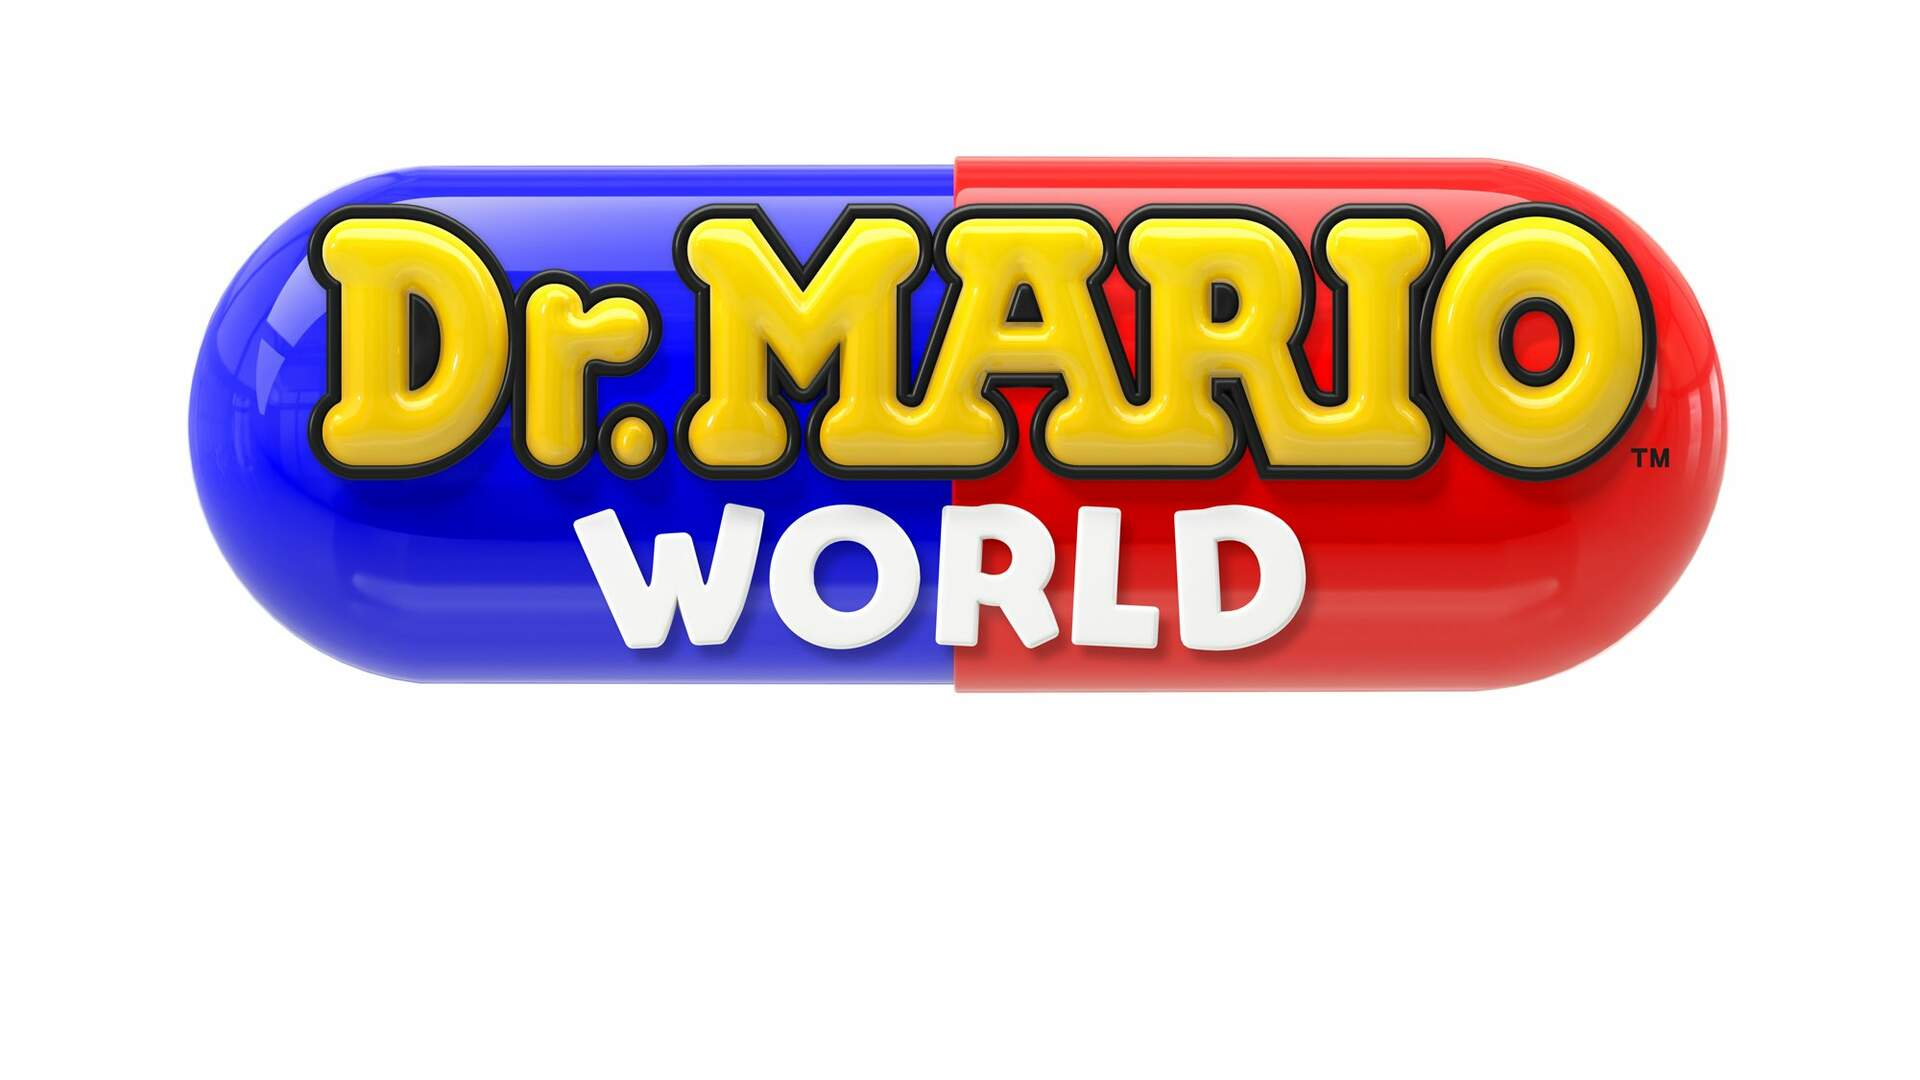 Nintendo Announces Dr. Mario World Smartphone Puzzle Game